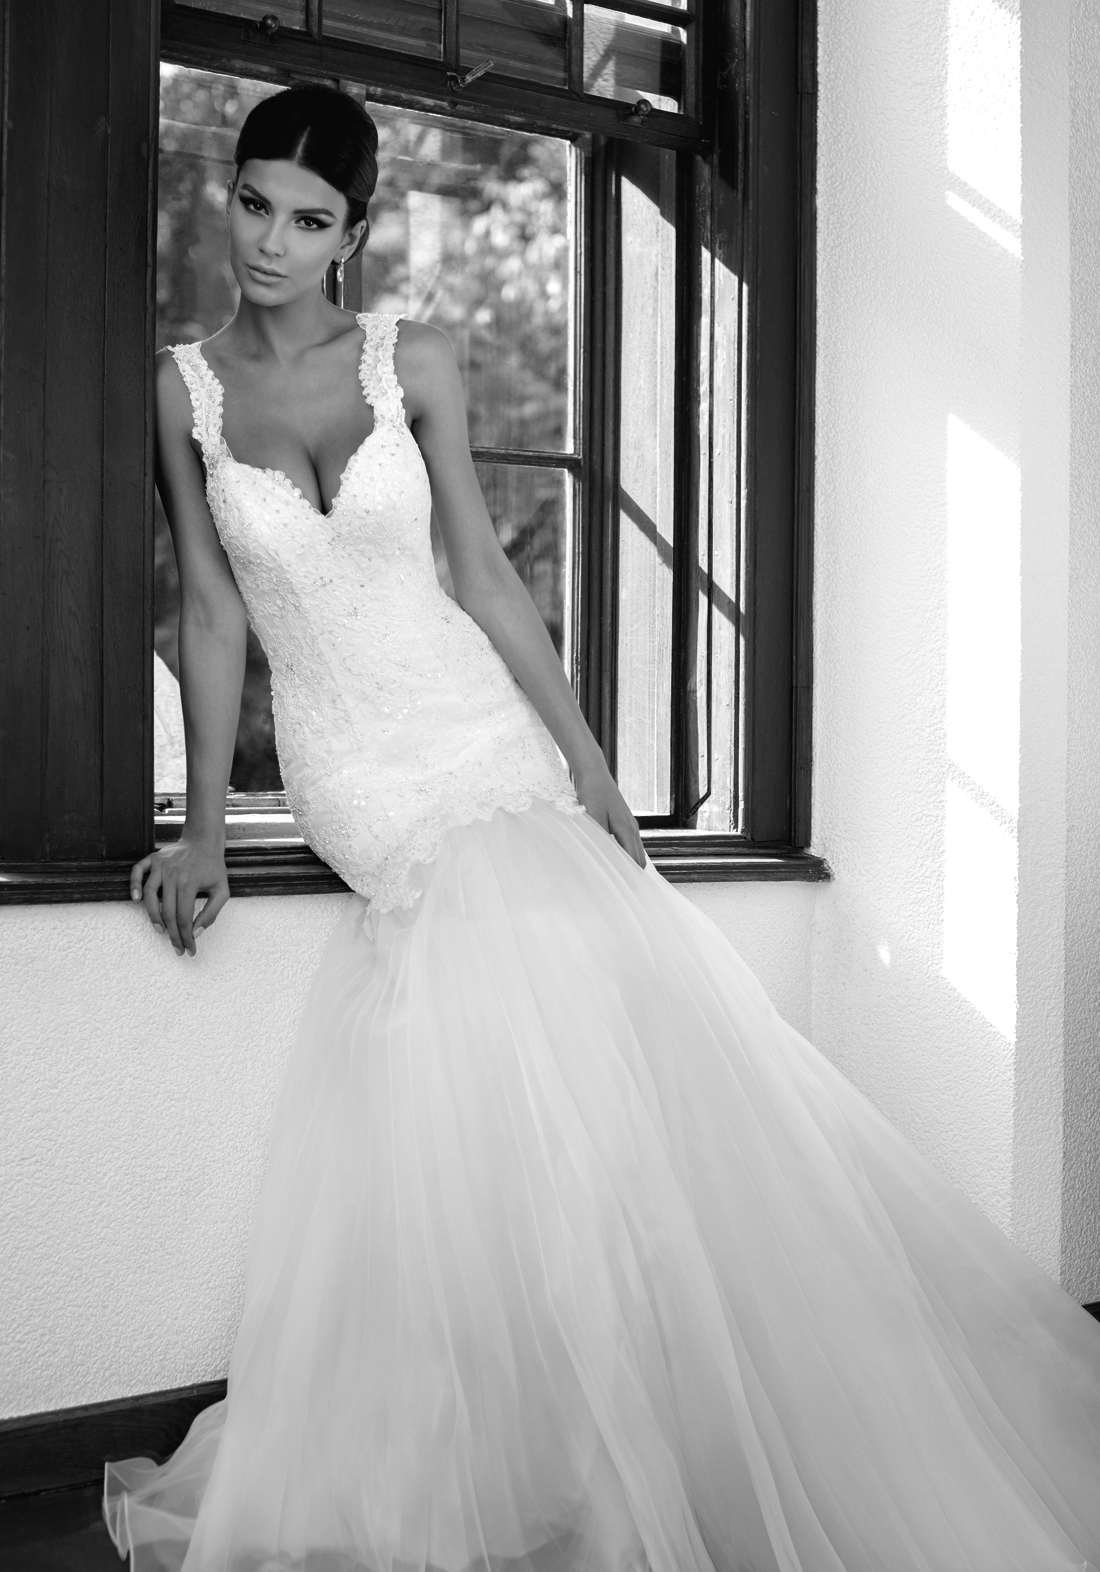 bien-savvy-wedding-dresses-2014-collection-27-01232014